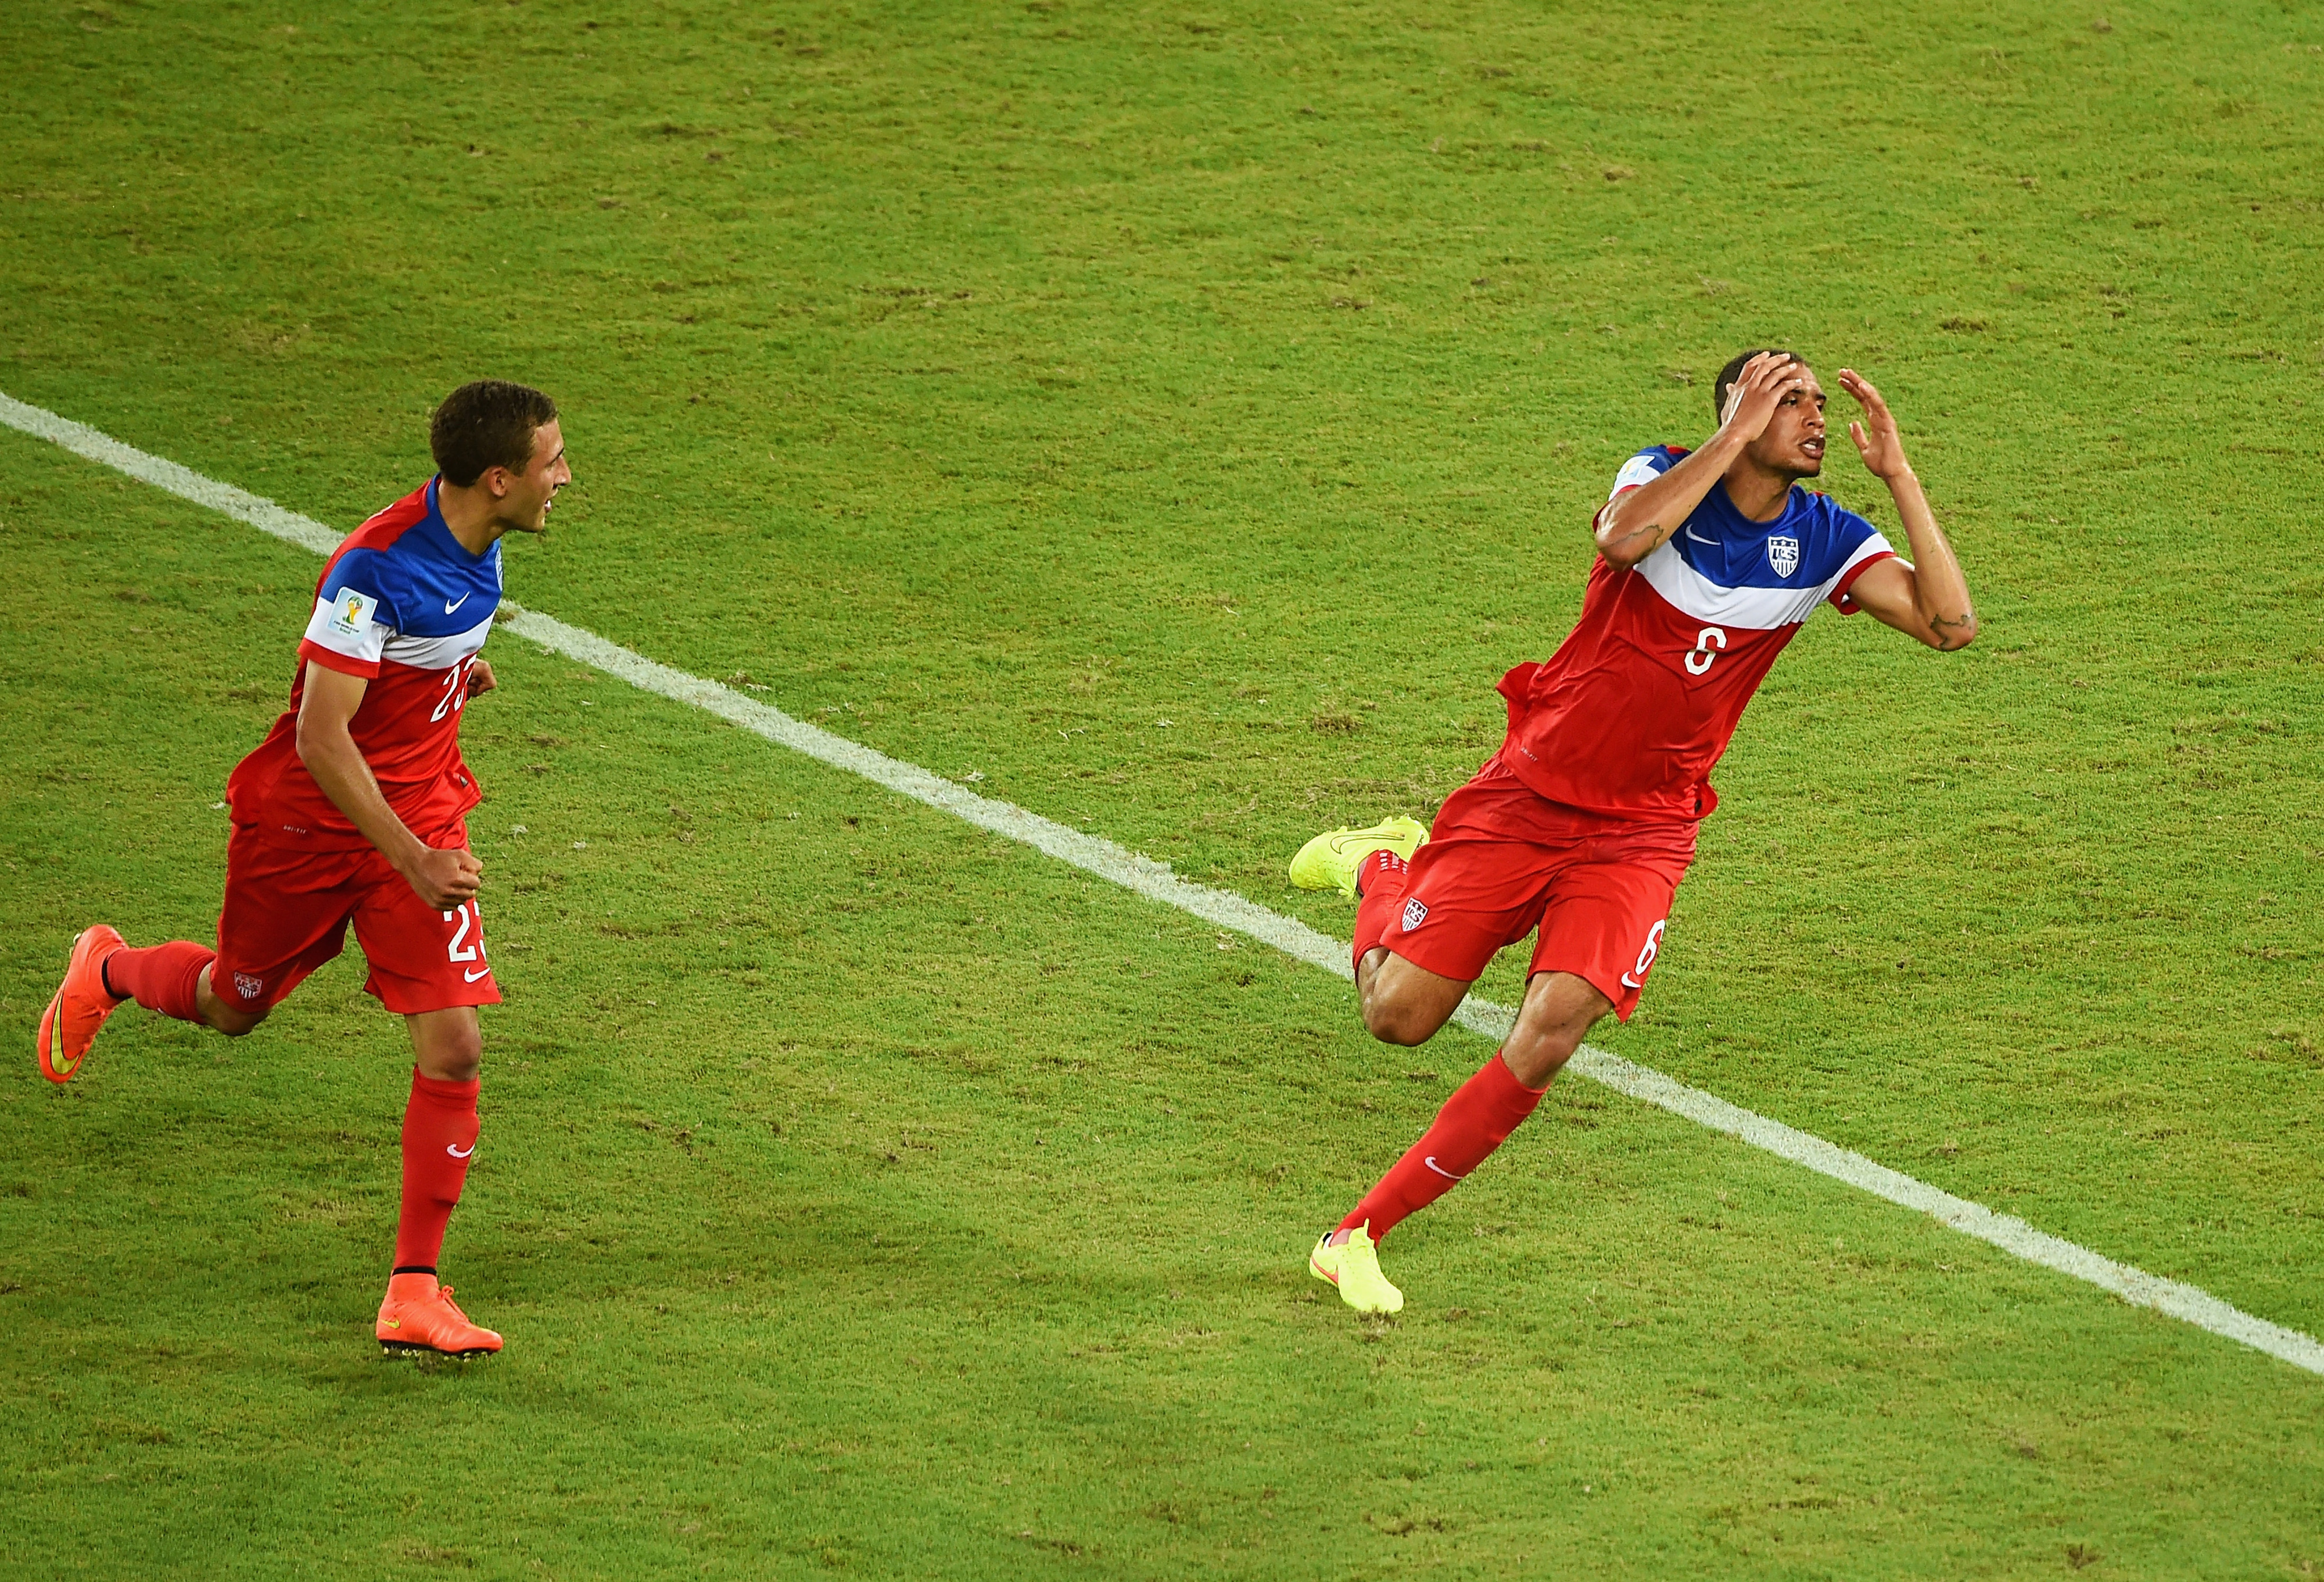 John Anthony Brooks looks as surprised as the rest of us after scoring the game-winner against Ghana.